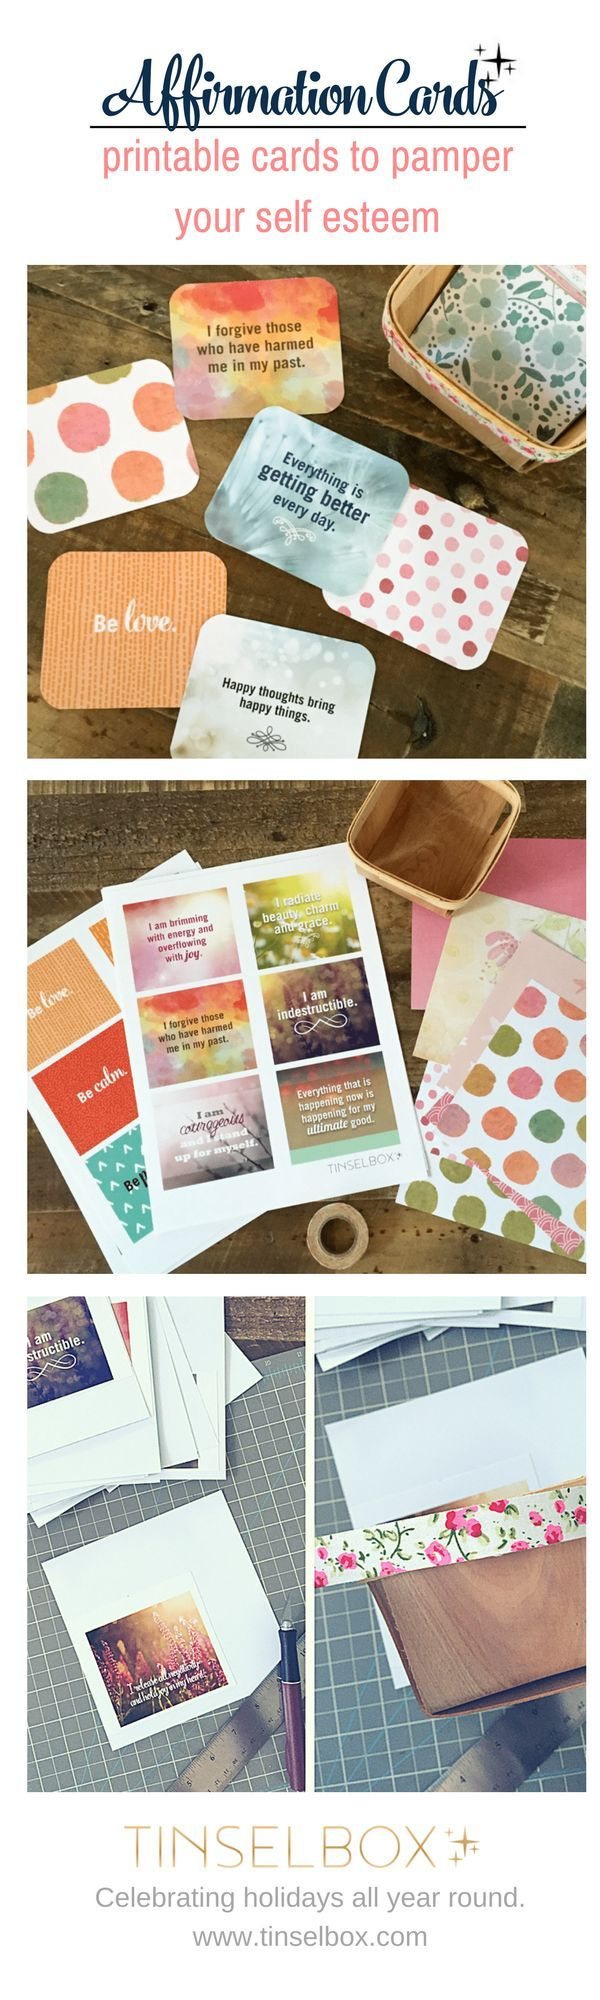 Printable Affirmation Cards: Pamper Your Self Esteem http://www.lawofatractions.com/peacefulness-of-the-heart/